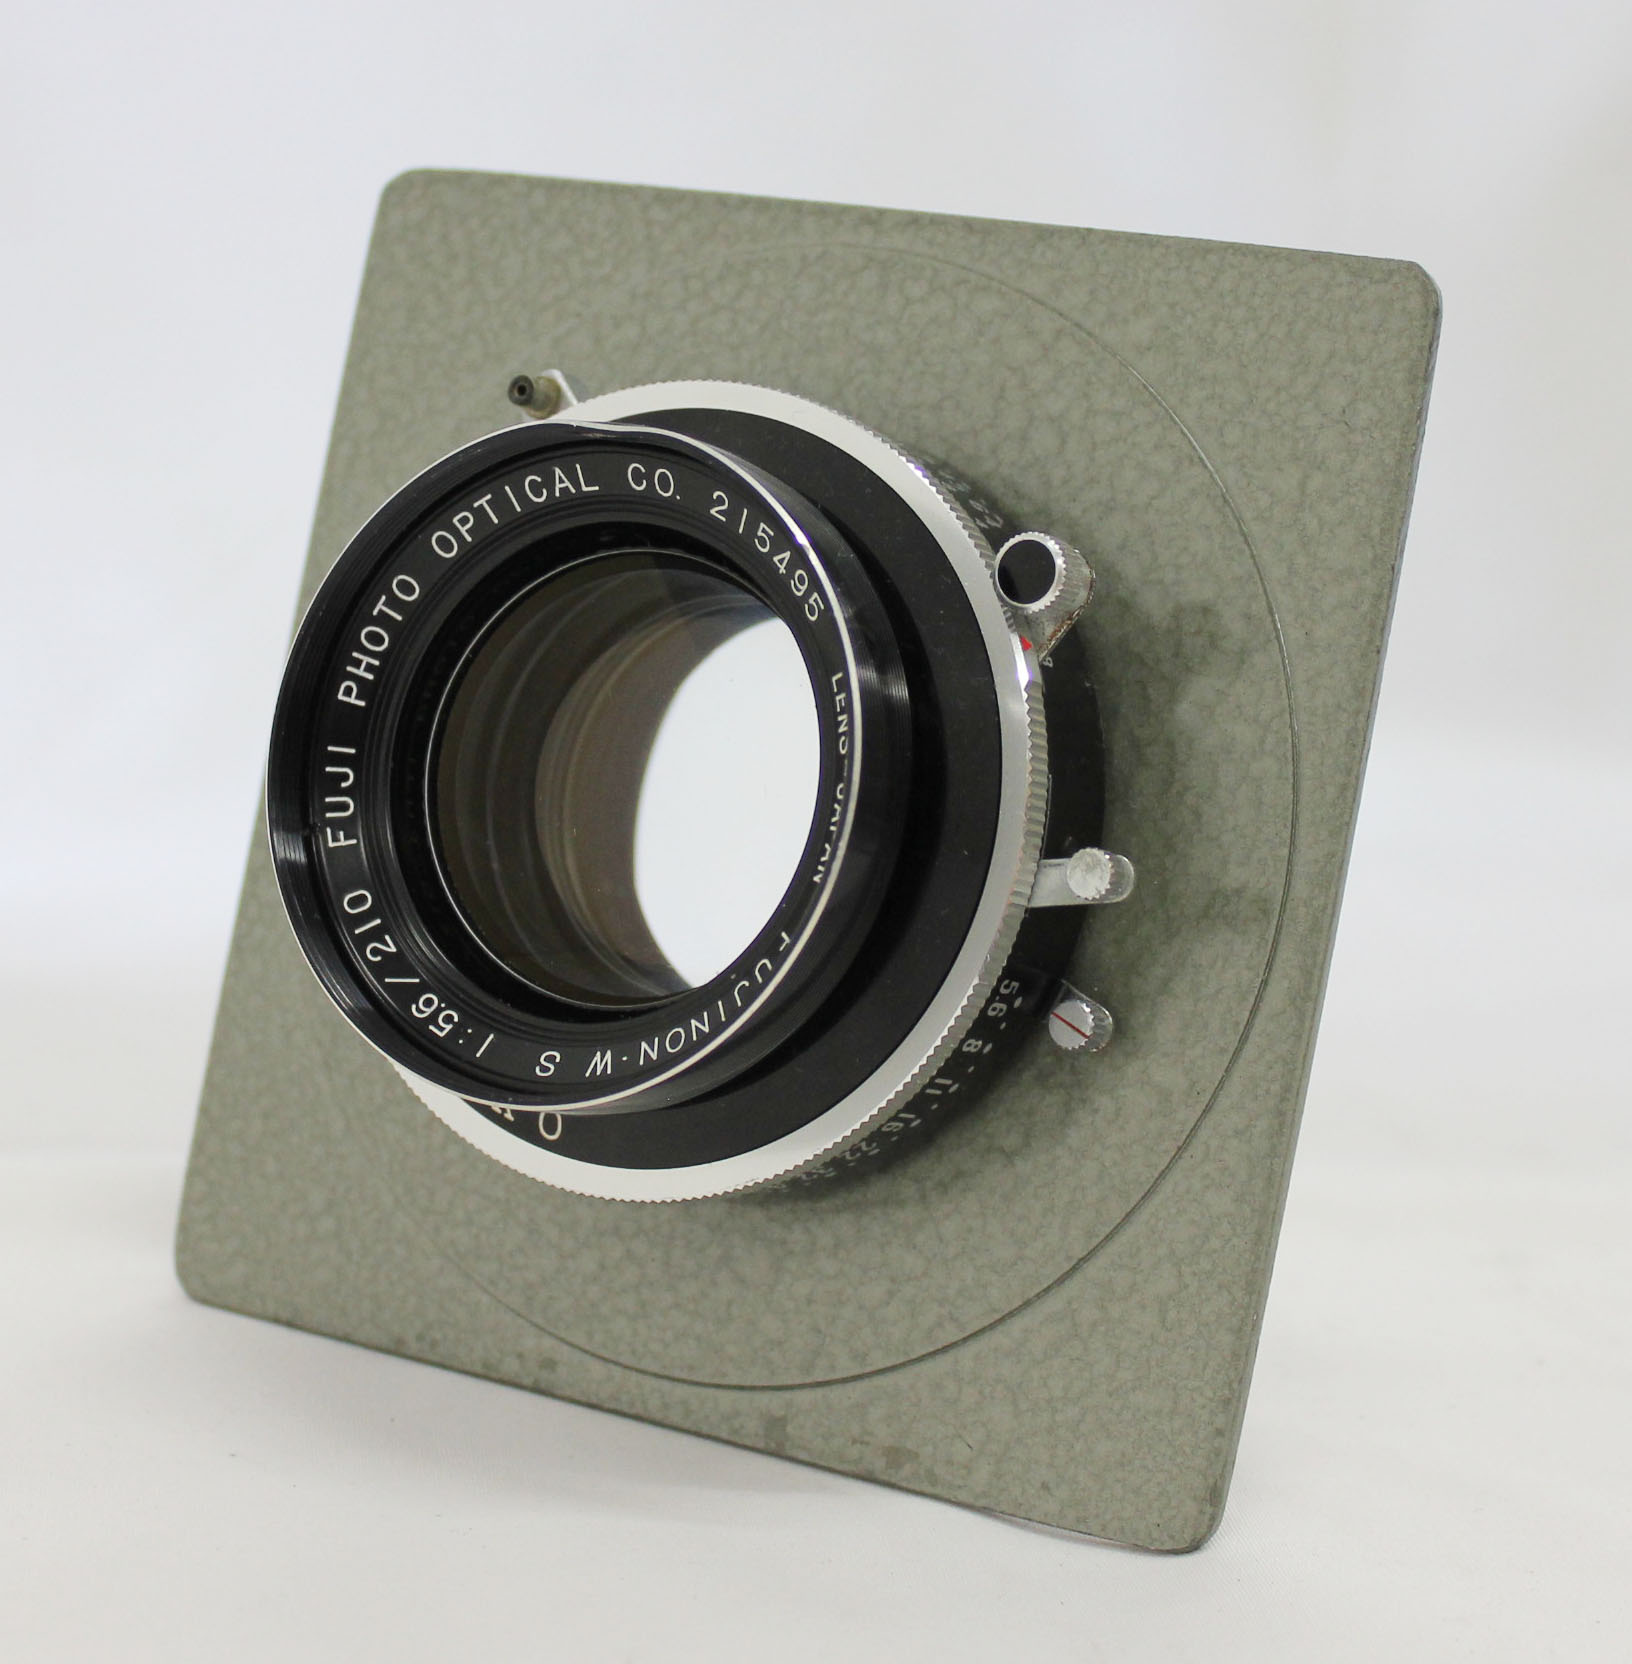 Japan Used Camera Shop | [Exc+++] Fuji Fujinon W S 210mm F/5.6 4x5 Large Format Lens with Seiko Shutter from Japan